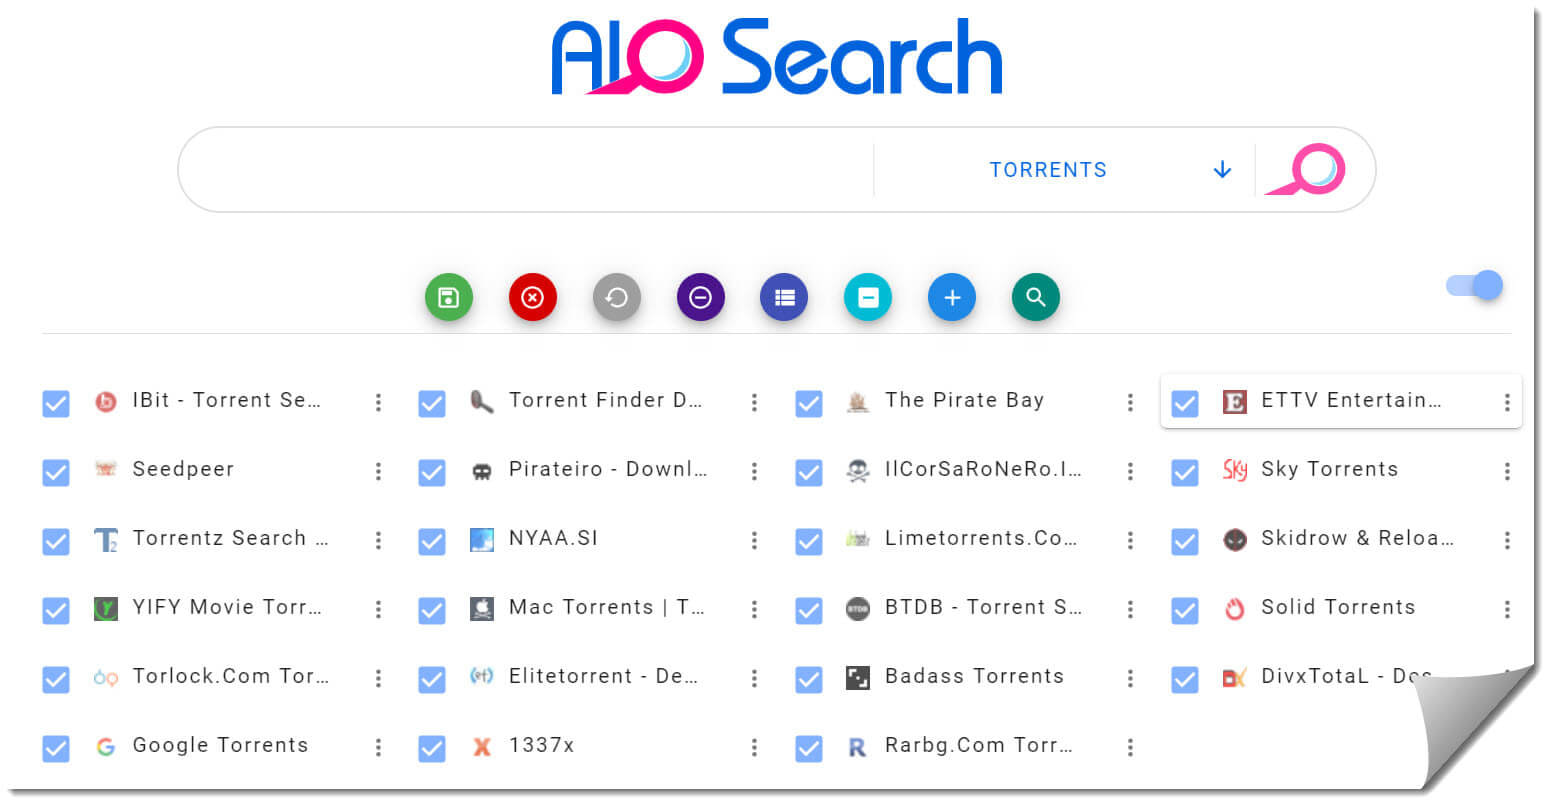 21 Of The Best uTorrent Movies Search Engine To Find Any Movie